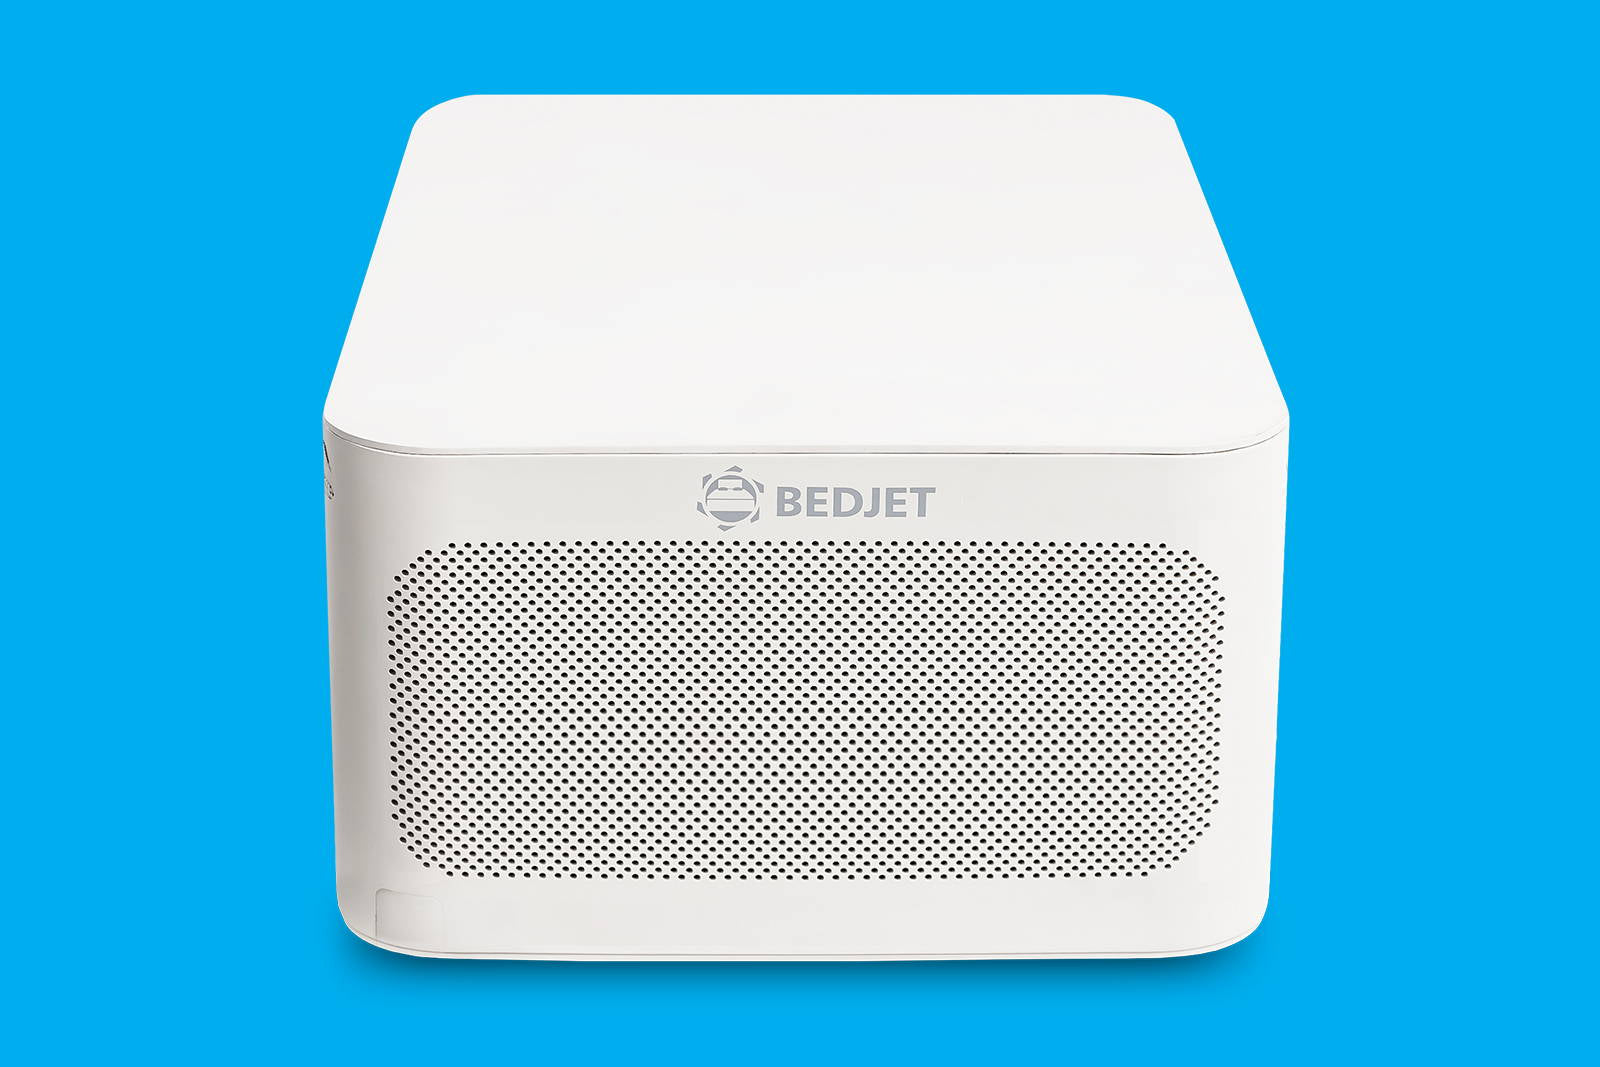 BedJet Buyer's Guide: What Do I Need?